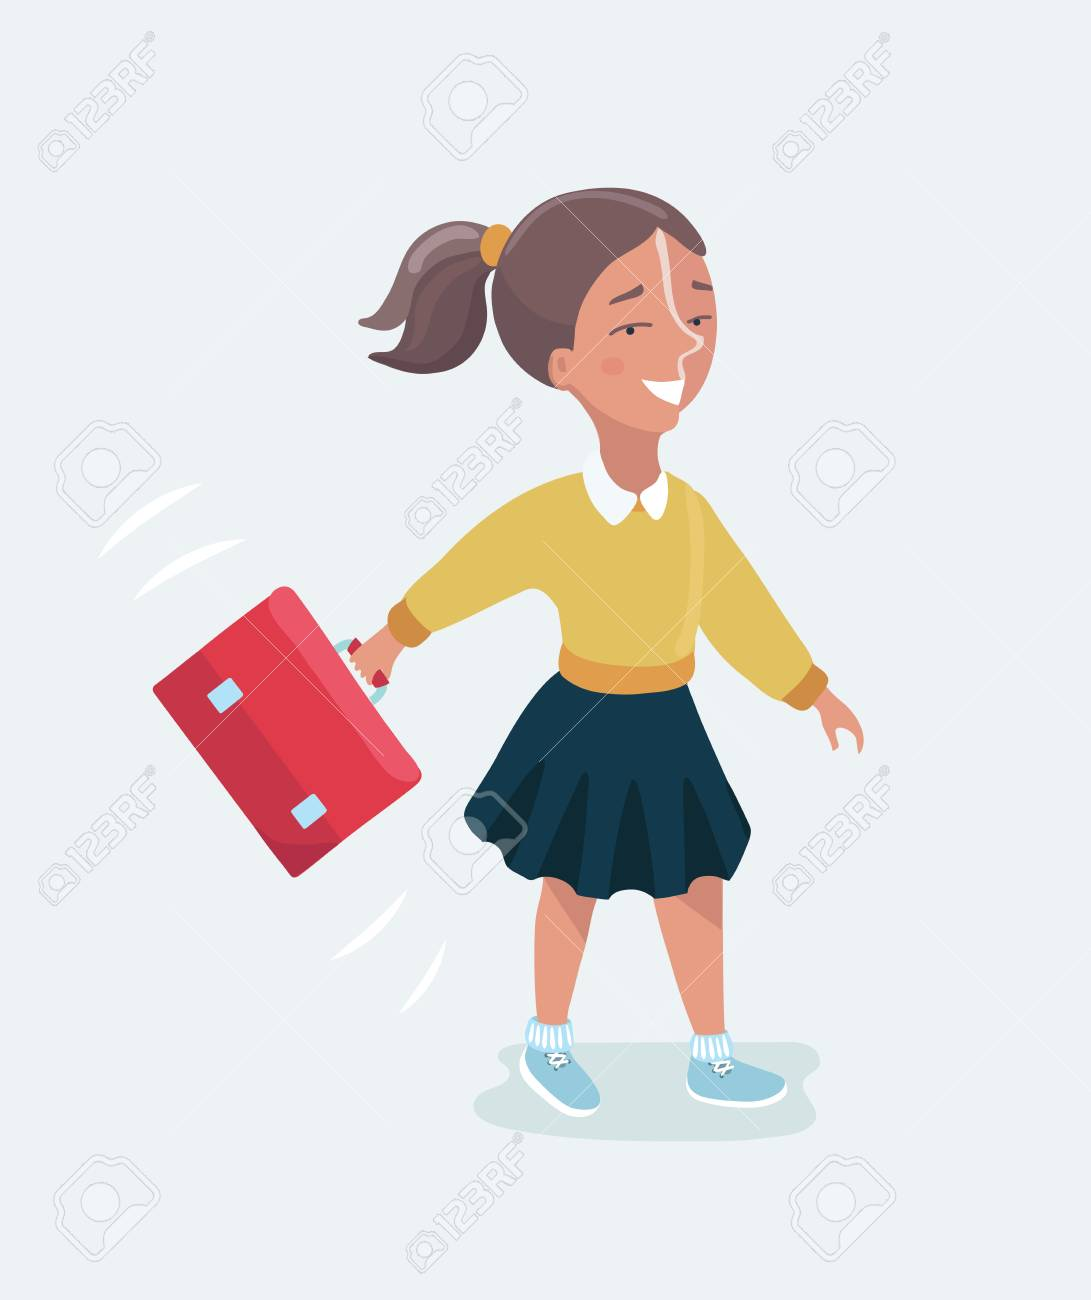 Vector cartoon funny cute illustration of happy schoolgirl with a backpack  going to school Stock Vector 6cd30f9f4ddb1